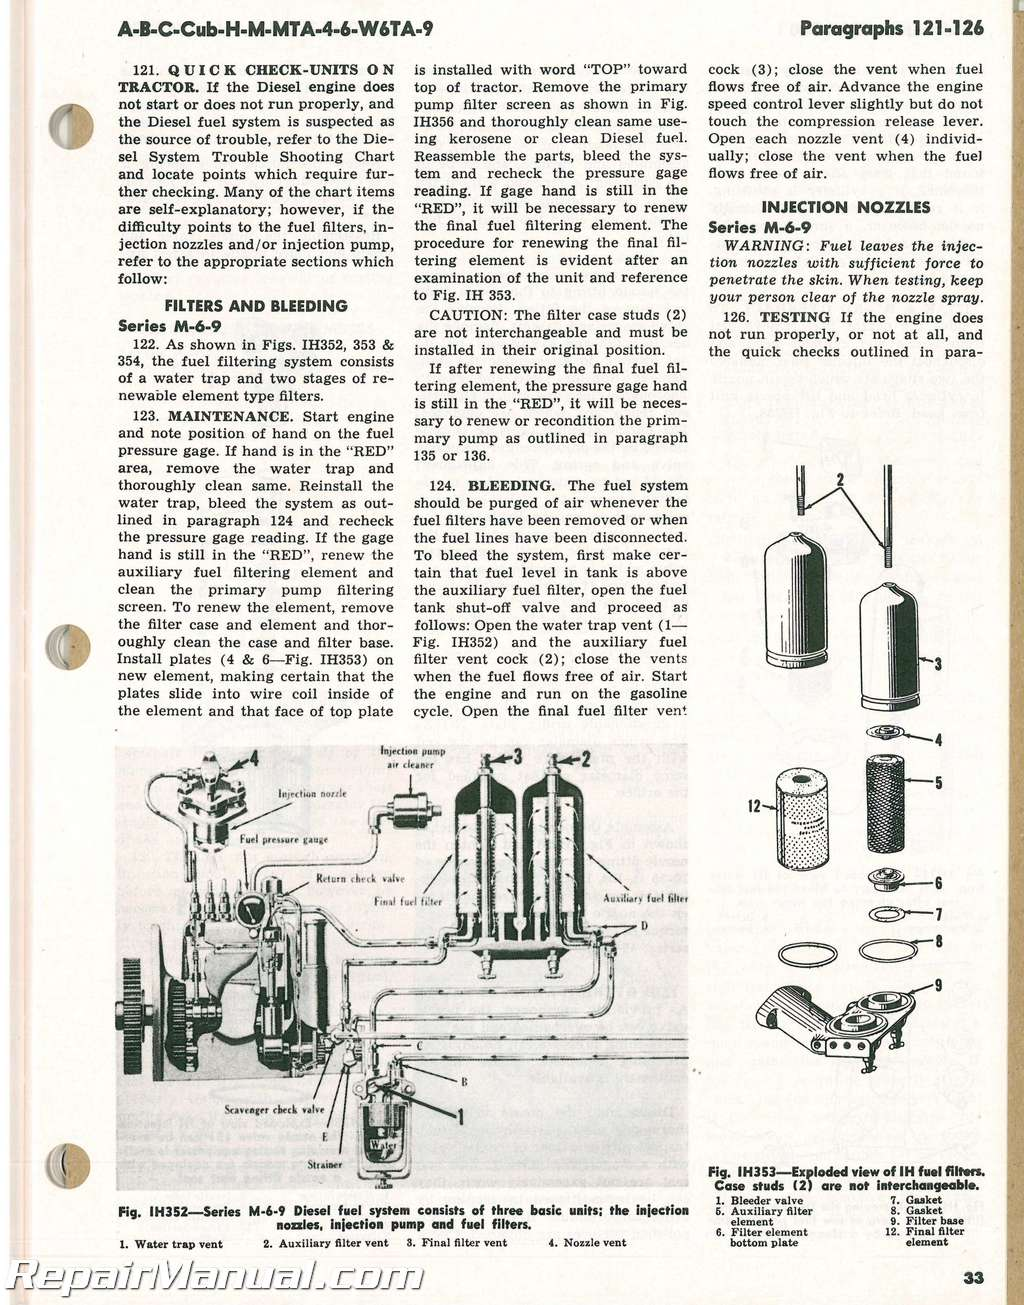 International Harvester Super Non Series A B C Mta H M Md Cub 6 7 Powerstroke Fuel Filter Assembly Prior To 1957 Mtad 4 D6 W6ta W6tad 9 D9 Tractor Manual